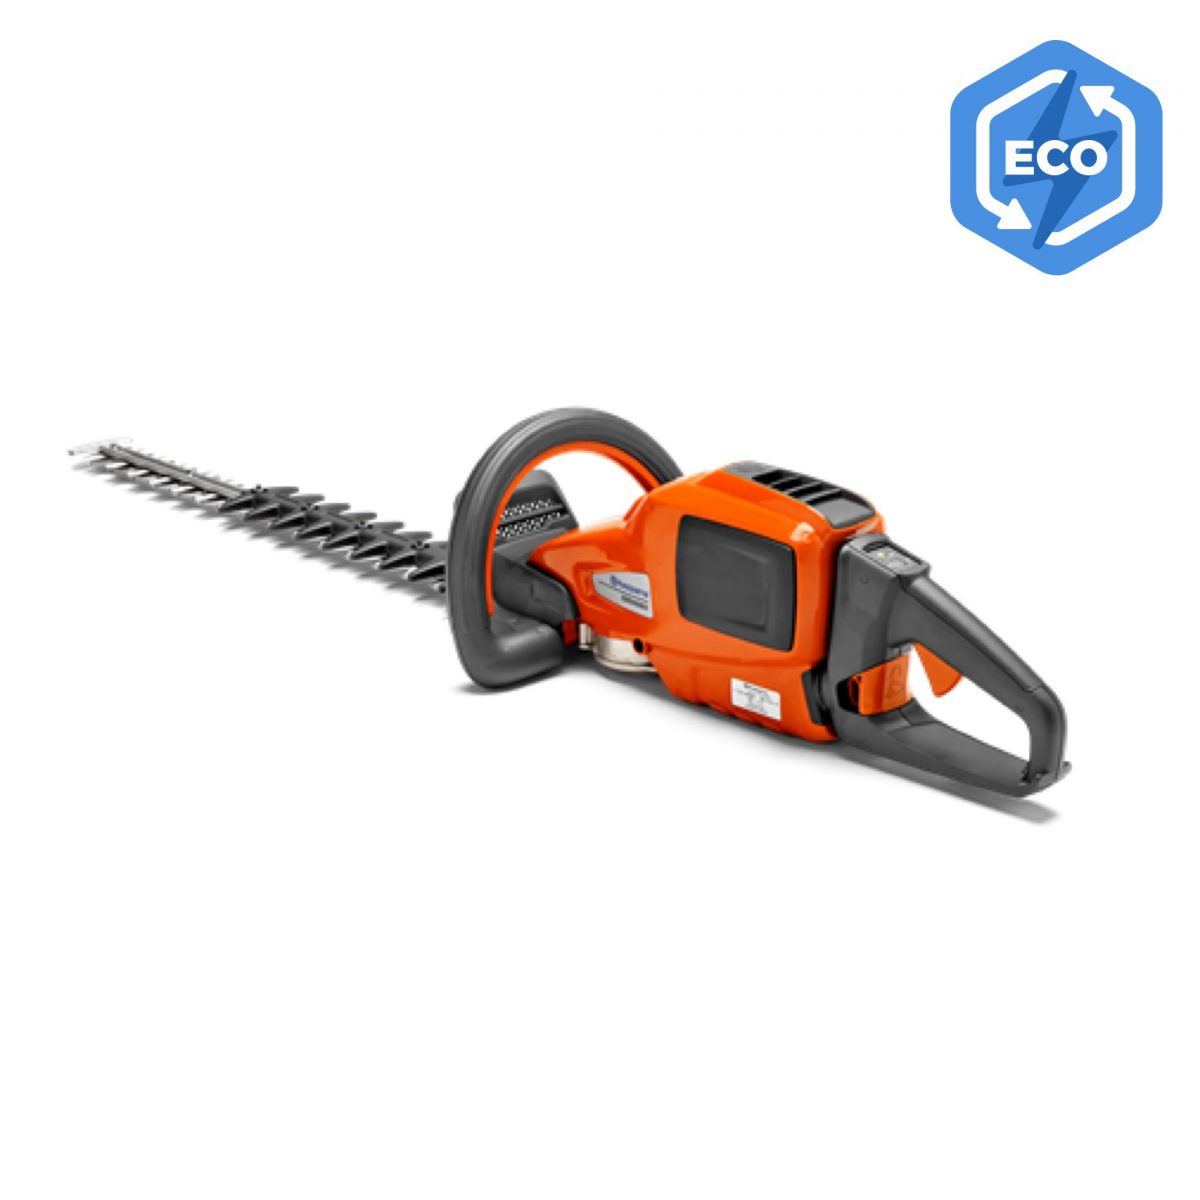 Husqvarna 520iHD60 Hedge Trimmer